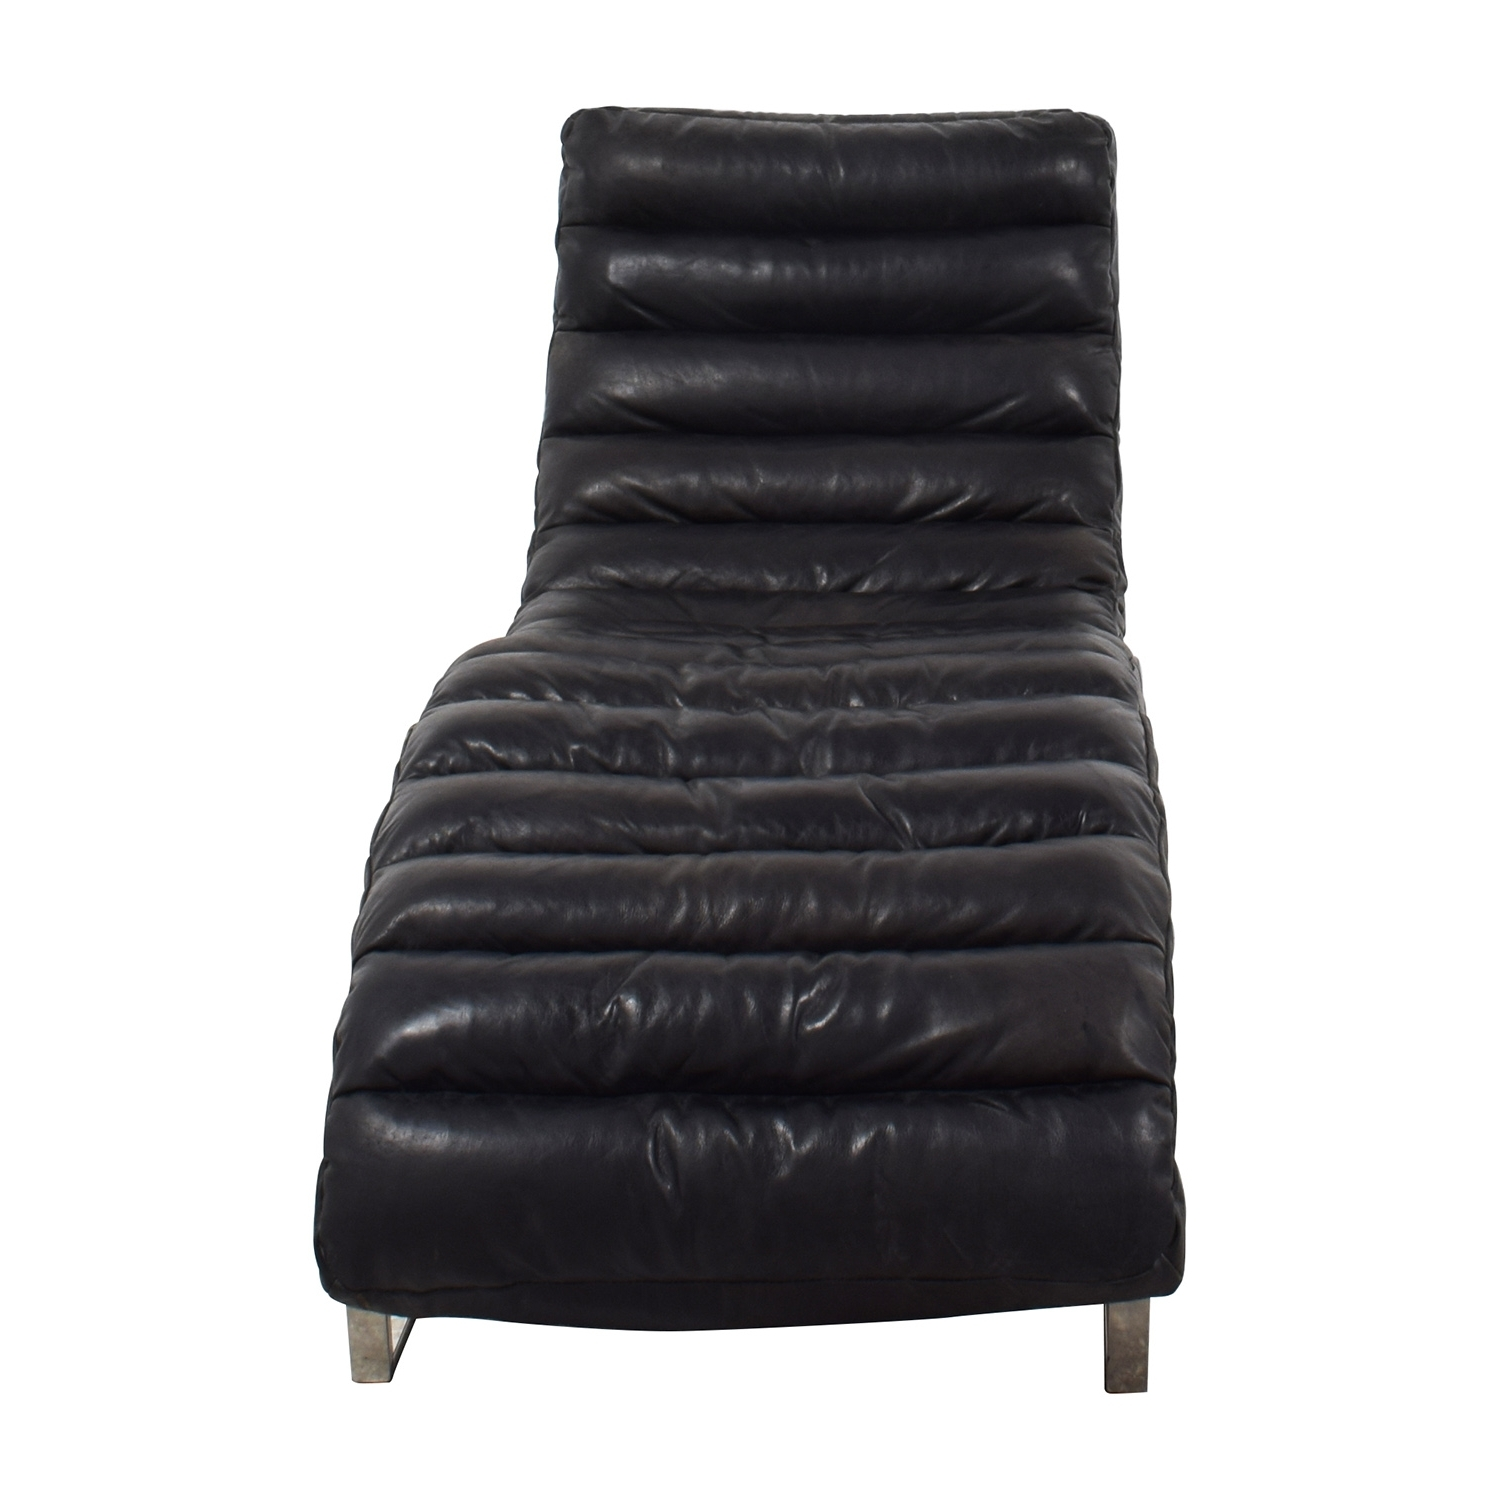 [%68% Off – Restoration Hardware Restoration Hardware Oviedo Black In 2017 Black Leather Chaises|Black Leather Chaises Regarding Popular 68% Off – Restoration Hardware Restoration Hardware Oviedo Black|Newest Black Leather Chaises With 68% Off – Restoration Hardware Restoration Hardware Oviedo Black|Most Up To Date 68% Off – Restoration Hardware Restoration Hardware Oviedo Black For Black Leather Chaises%] (View 1 of 15)